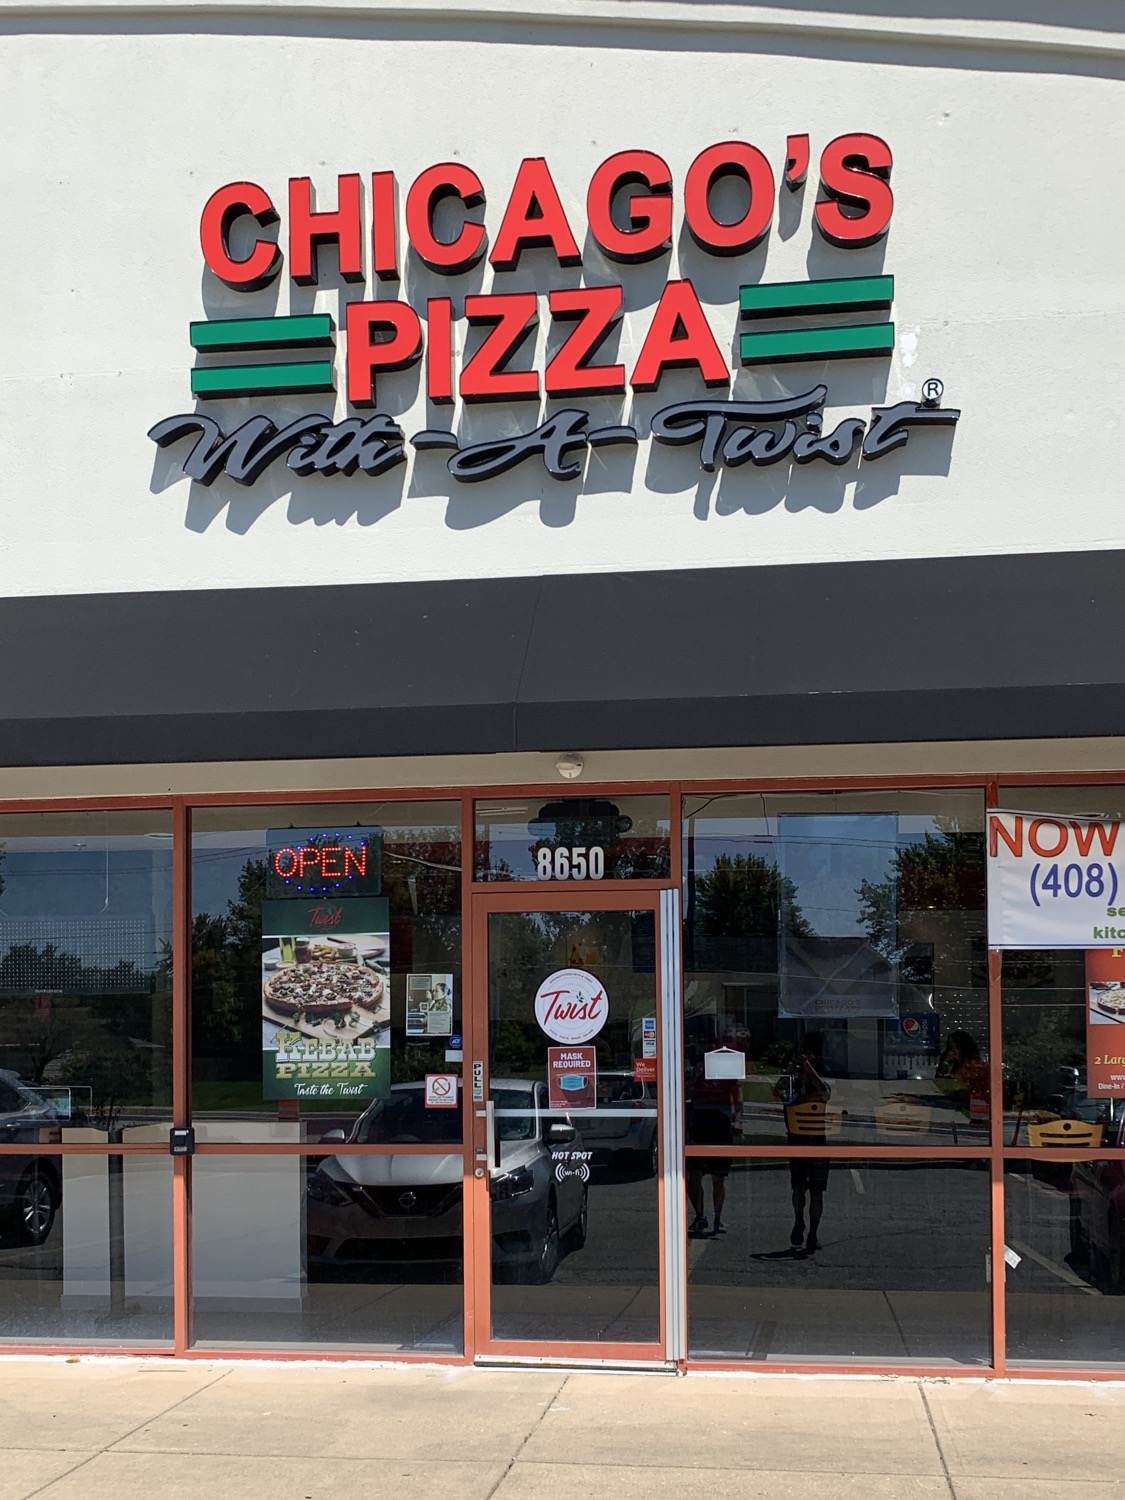 chicago's pizza with a twist indiana